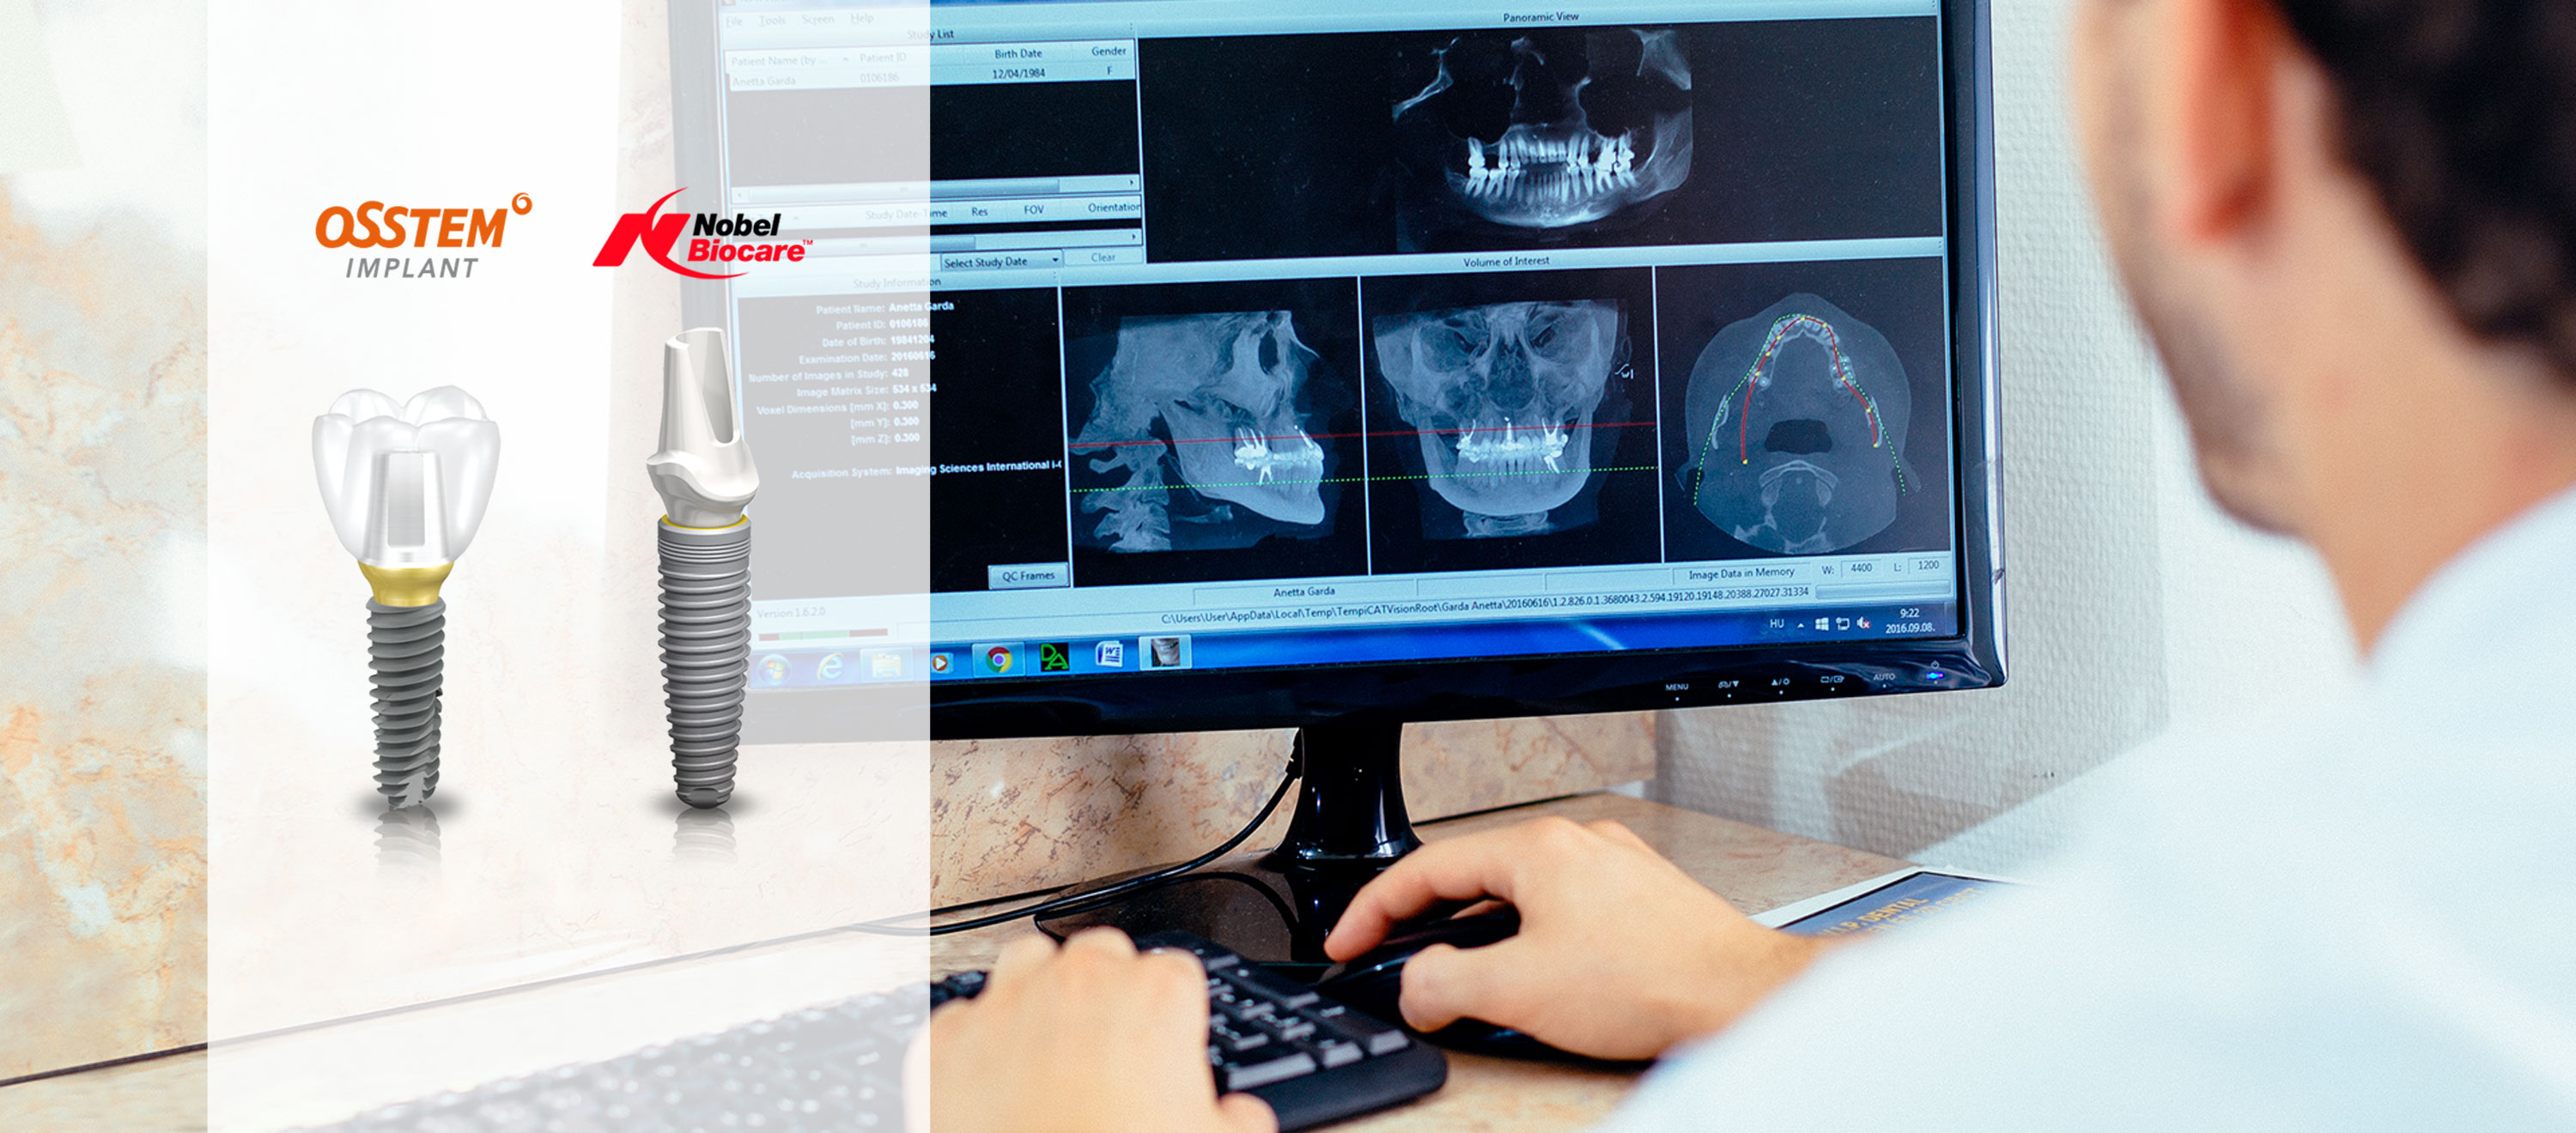 Painless tooth replacement with an implant. An X-ray photo and a tooth impression can be seen on the table